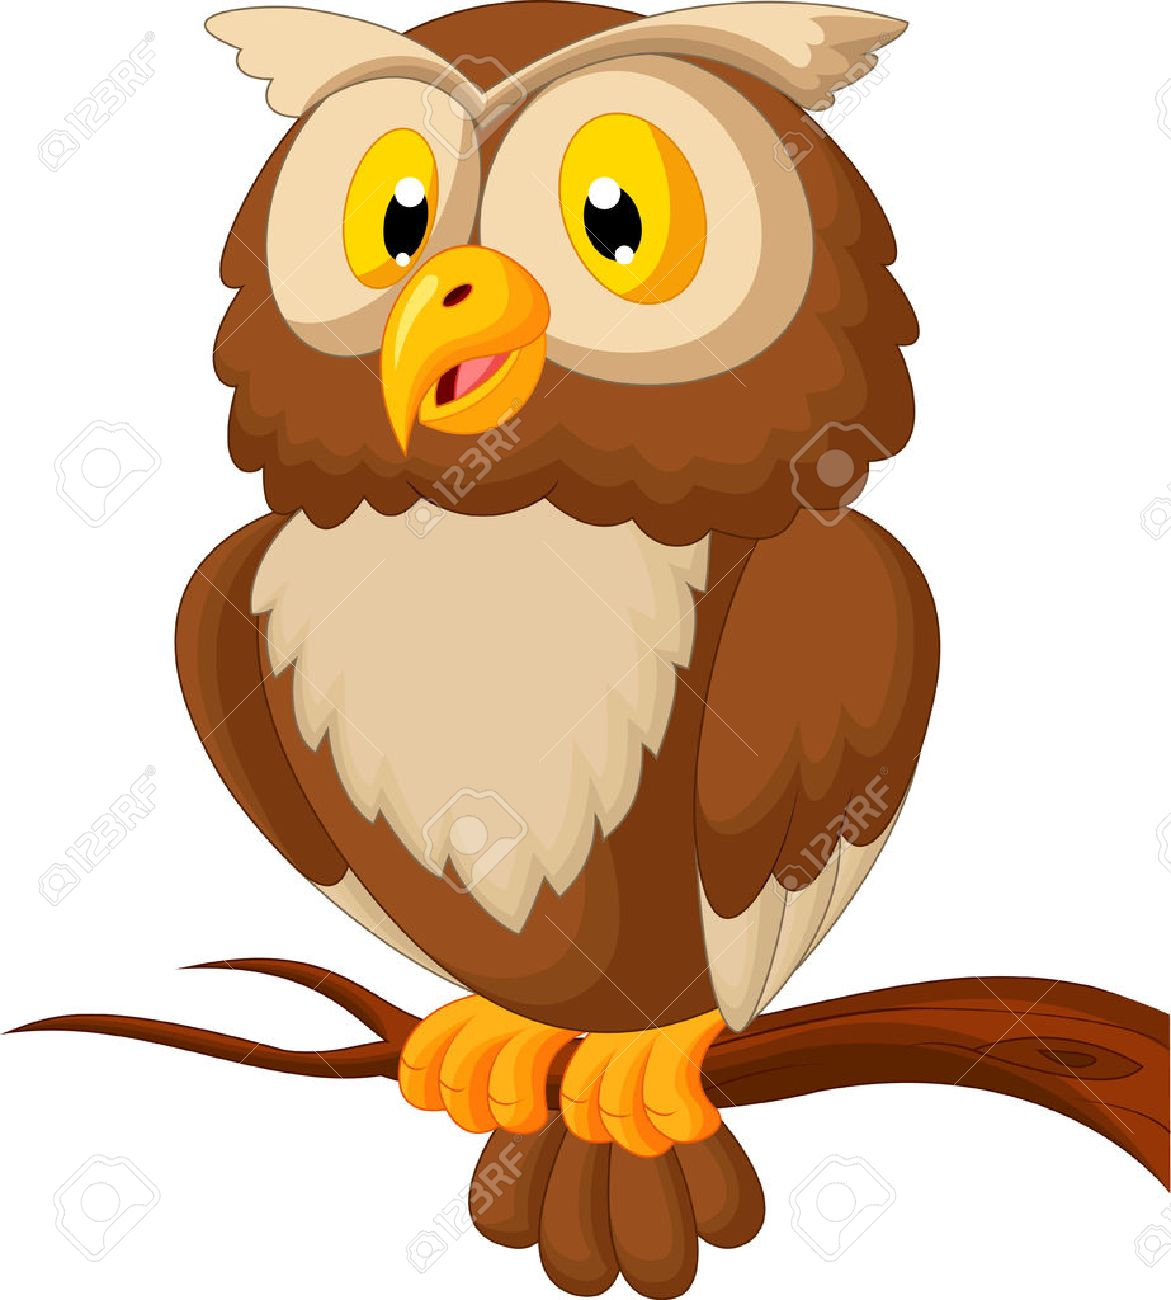 Cute Owl Cartoon Royalty Free Cliparts Vectors And Stock Illustration Image 23825861